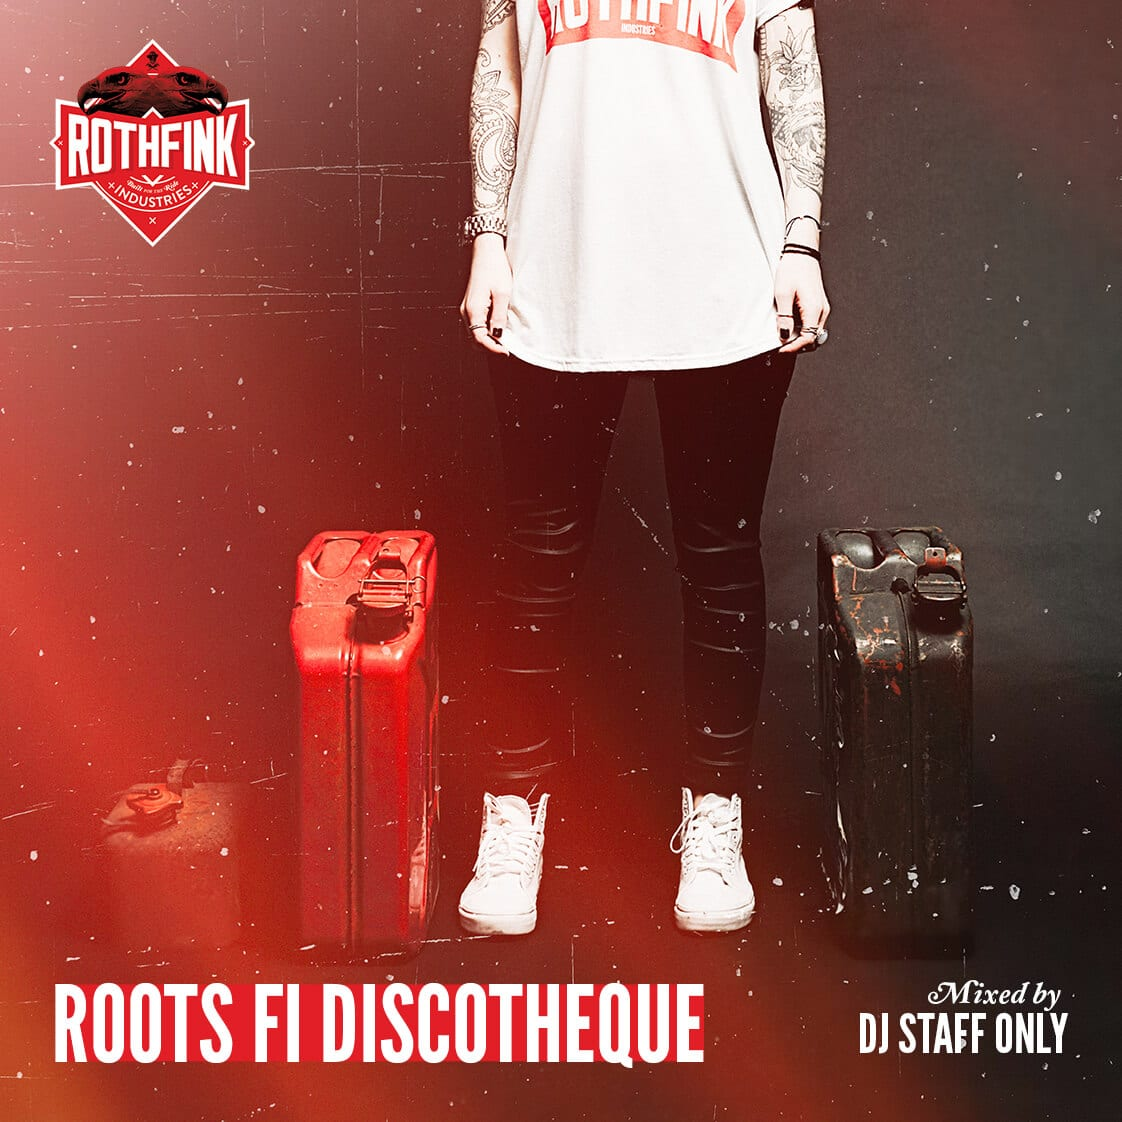 Roots-Fi Discotheque Mixtape